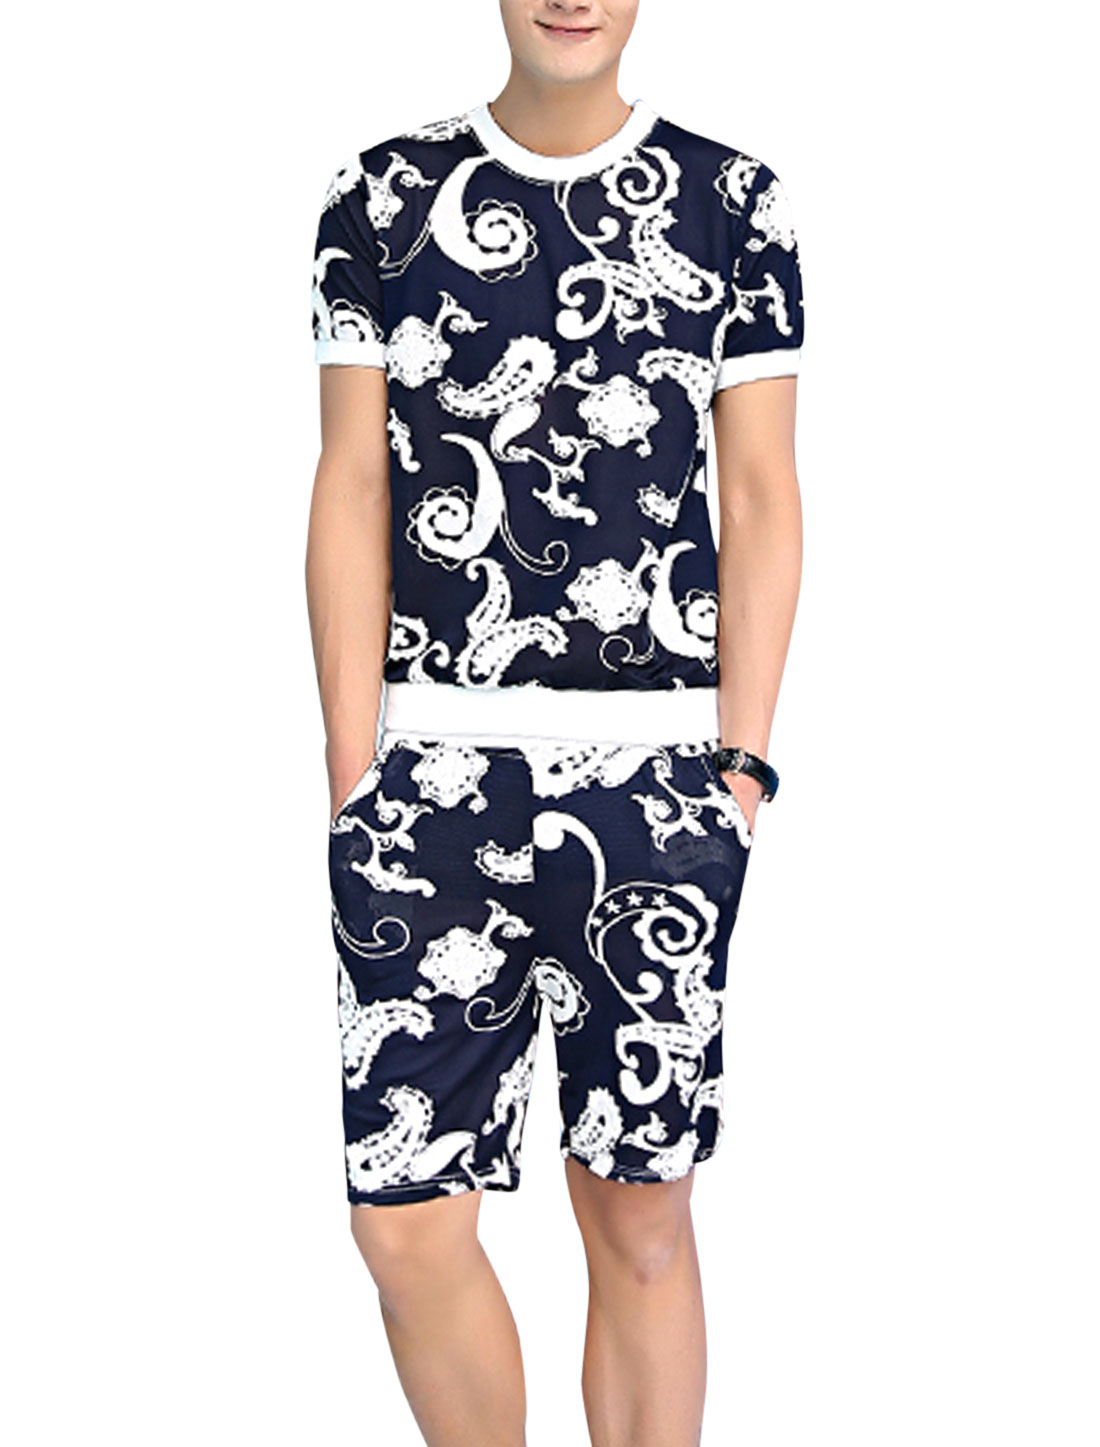 Men Paidsleys Prints Patchwork Pullover T-Shirt w Elastic Waist Shorts Navy Blue White S